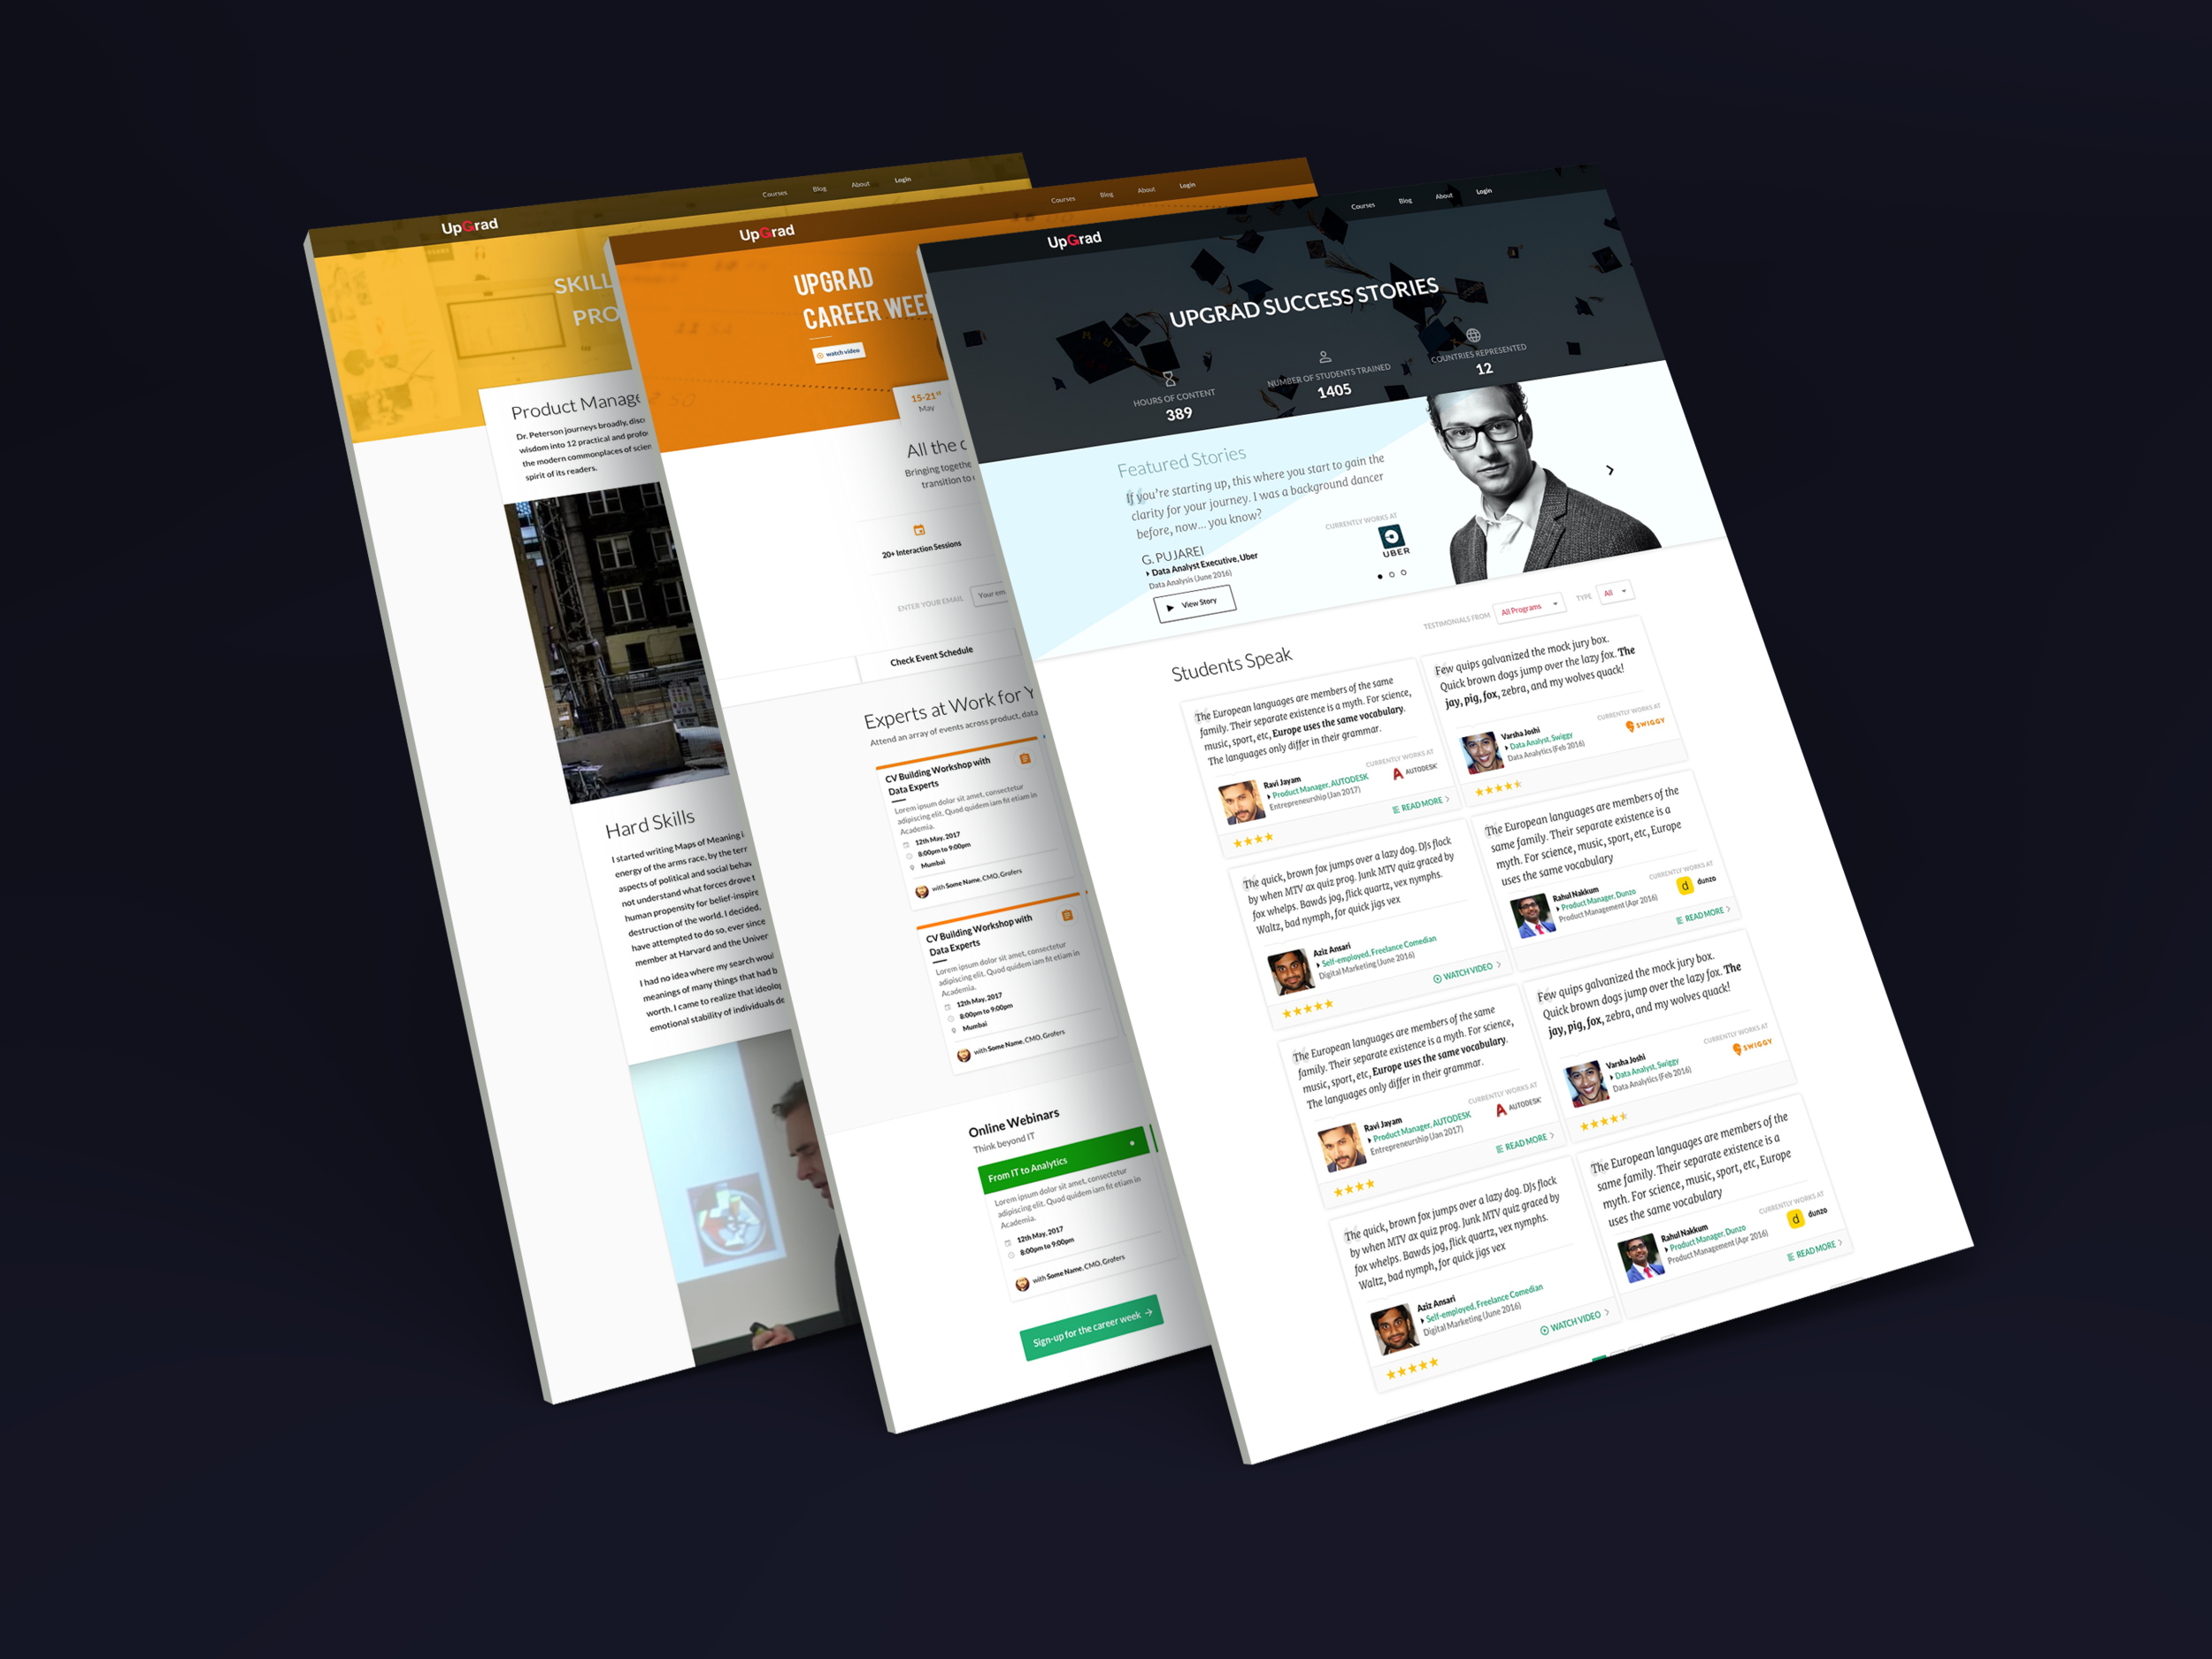 UpGrad Pages - A few stand-alone screens designed for UpGrad.More Details➝